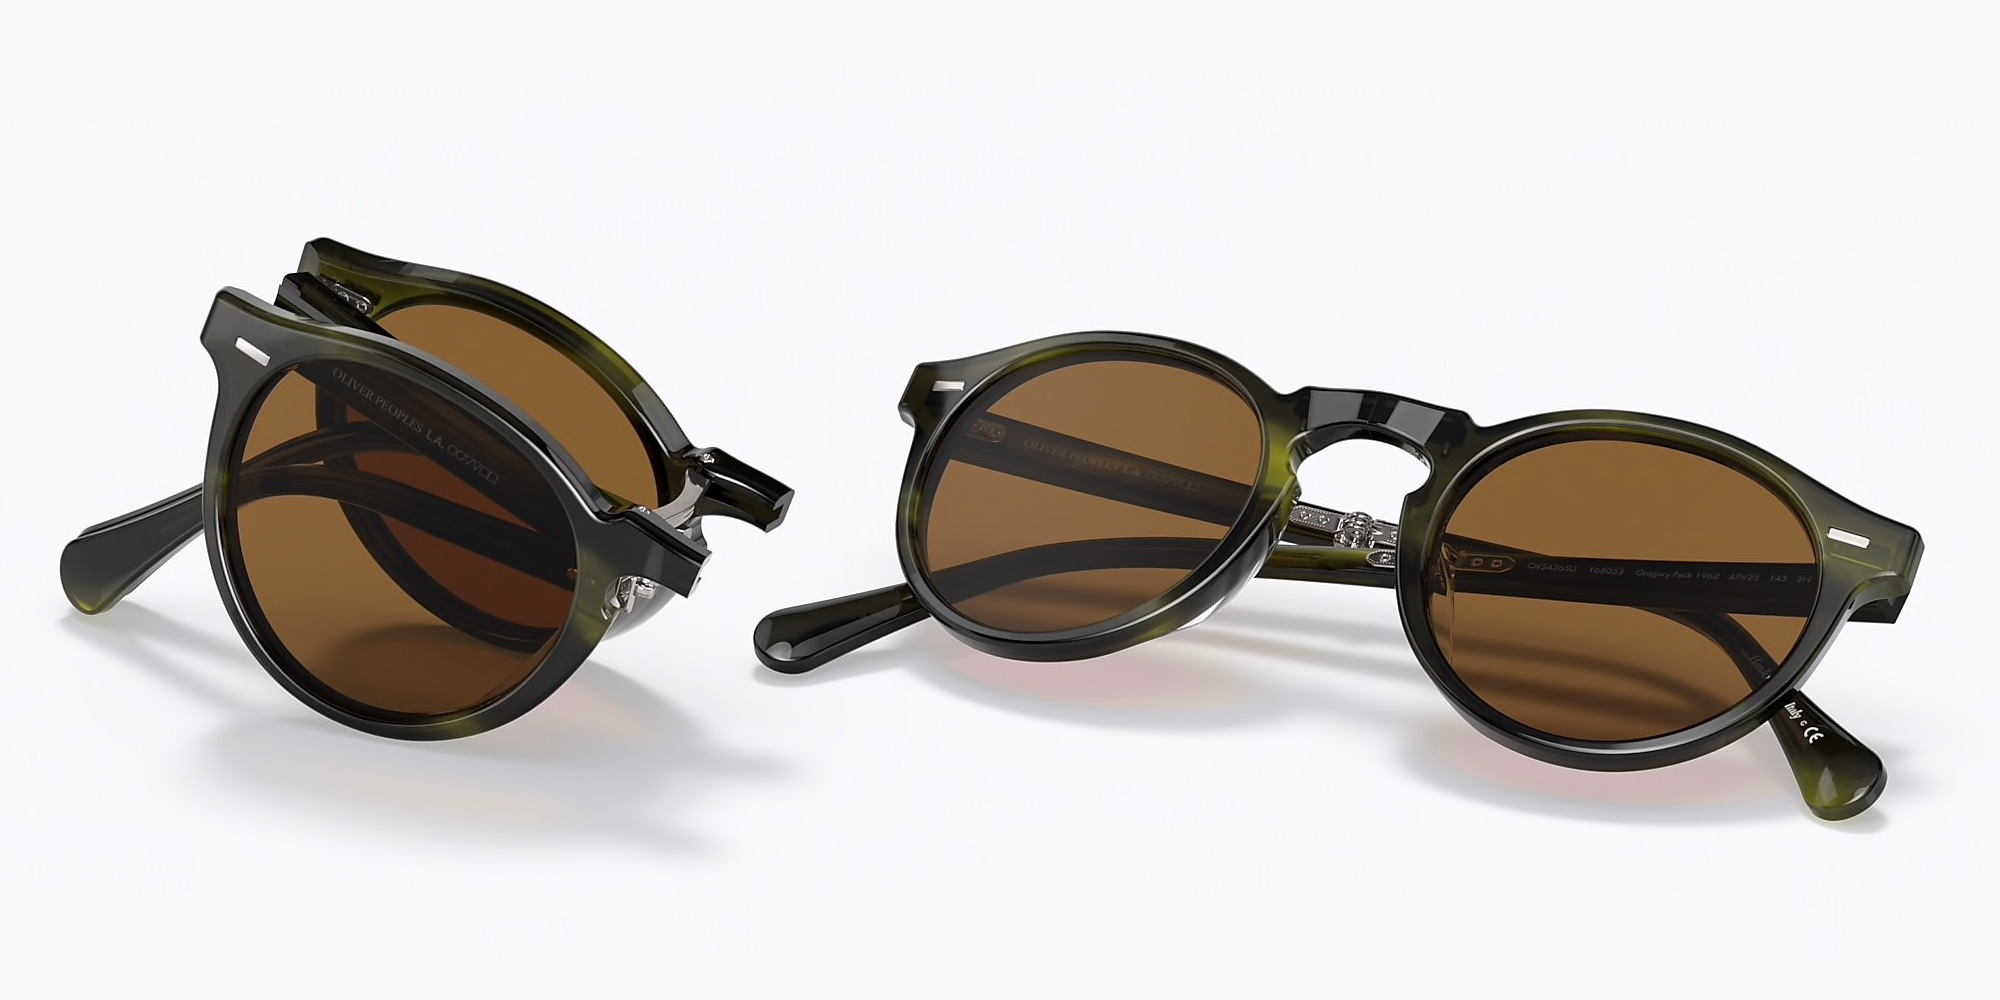 Oliver Peoples Gregory Peck 1962-8